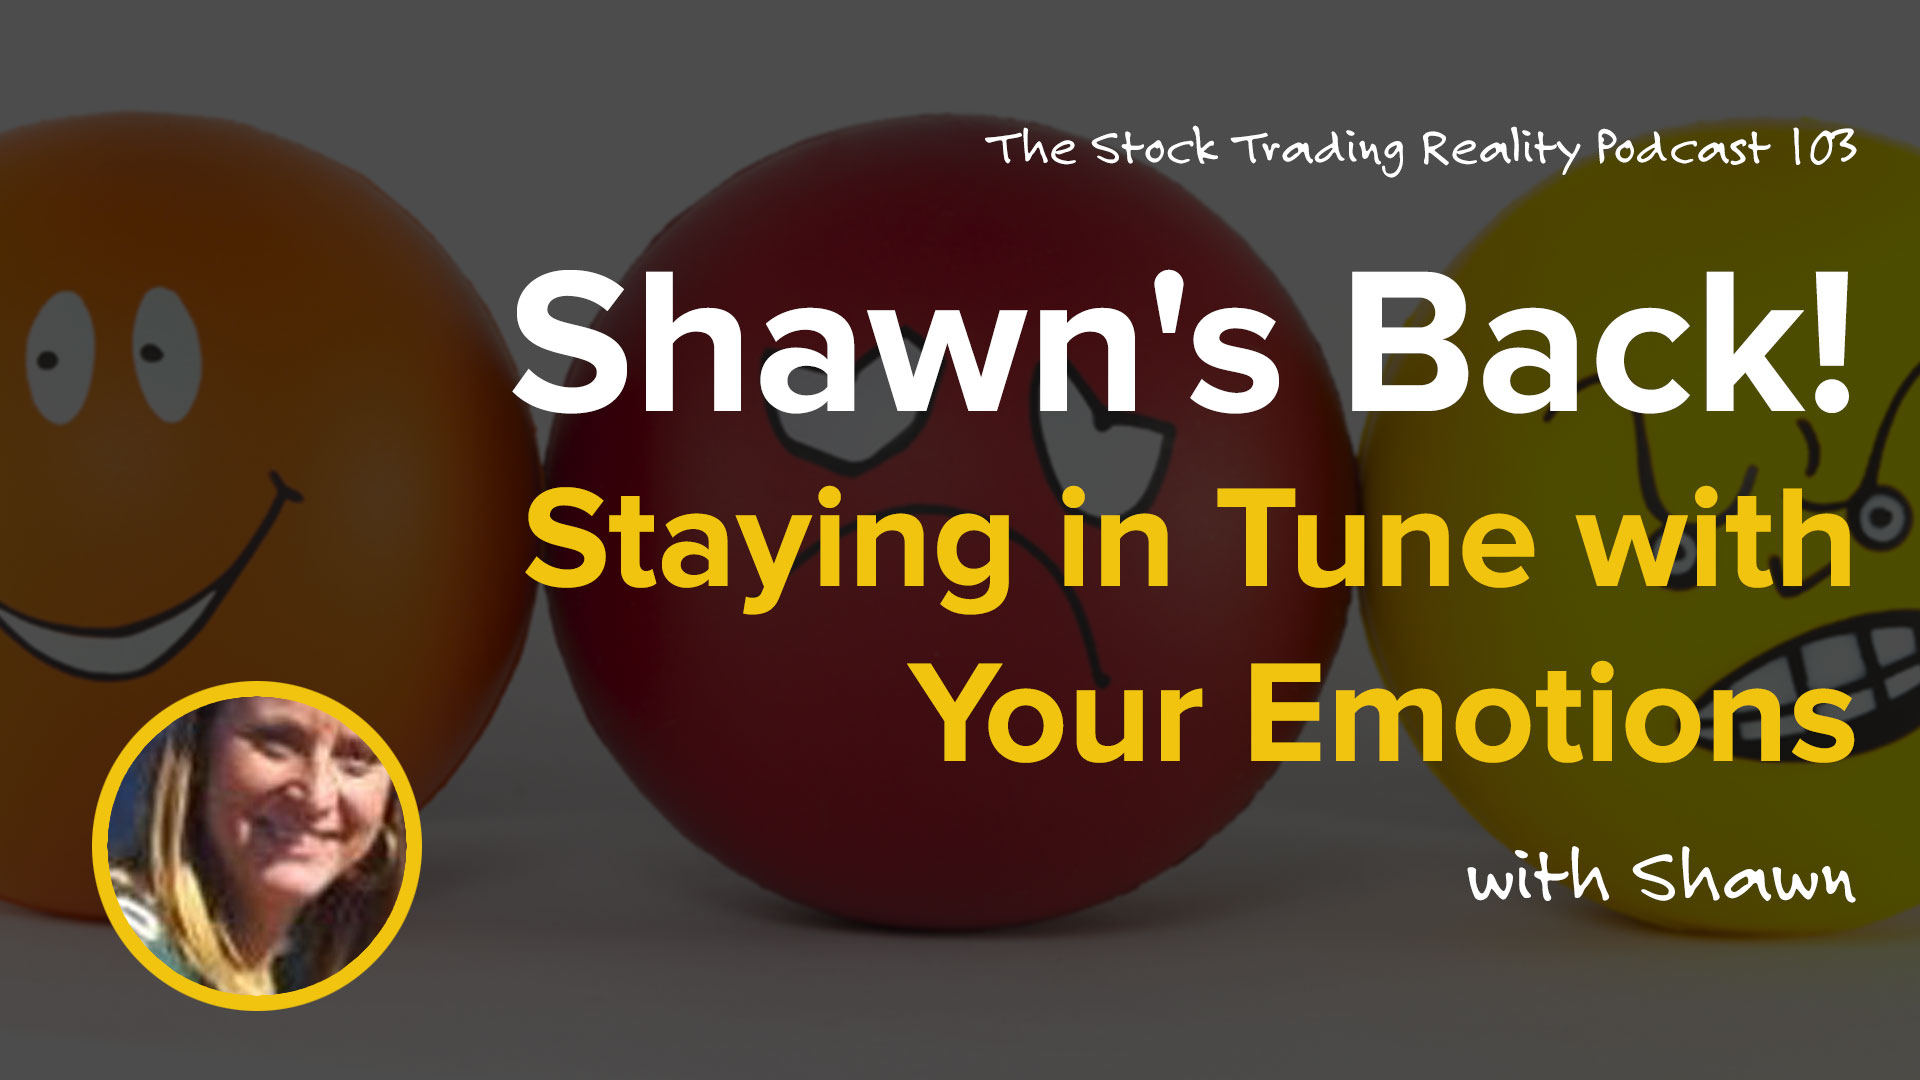 STR 103: Shawn's Back! Staying in Tune with Your Emotions